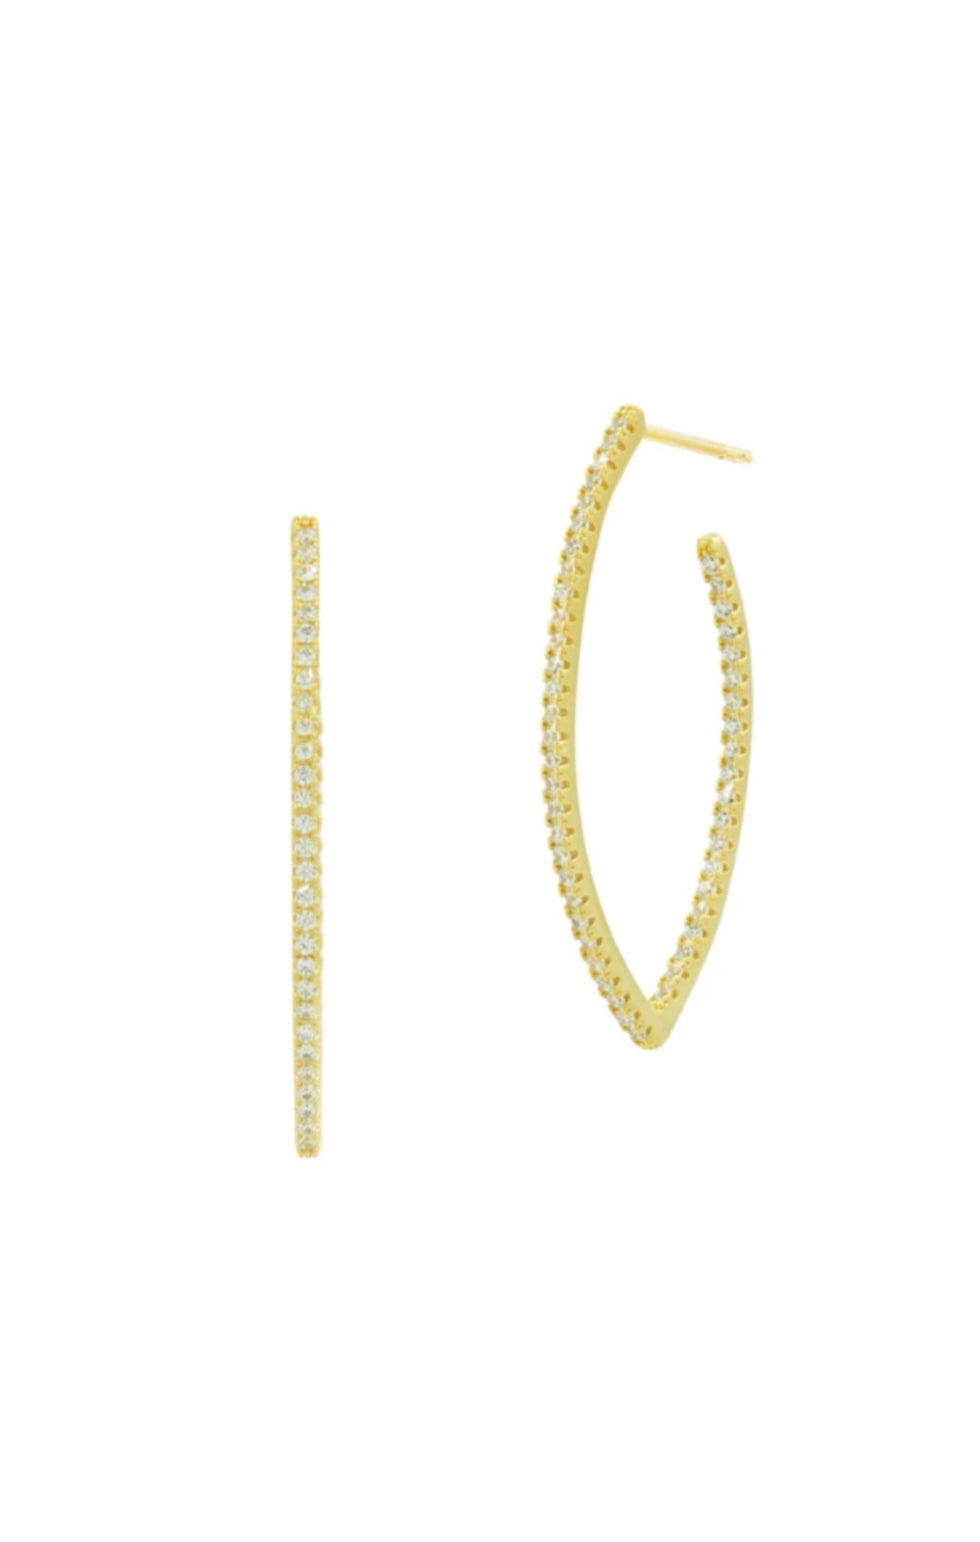 Pointed Pave Hoop Earring - Gold - Pre-Order